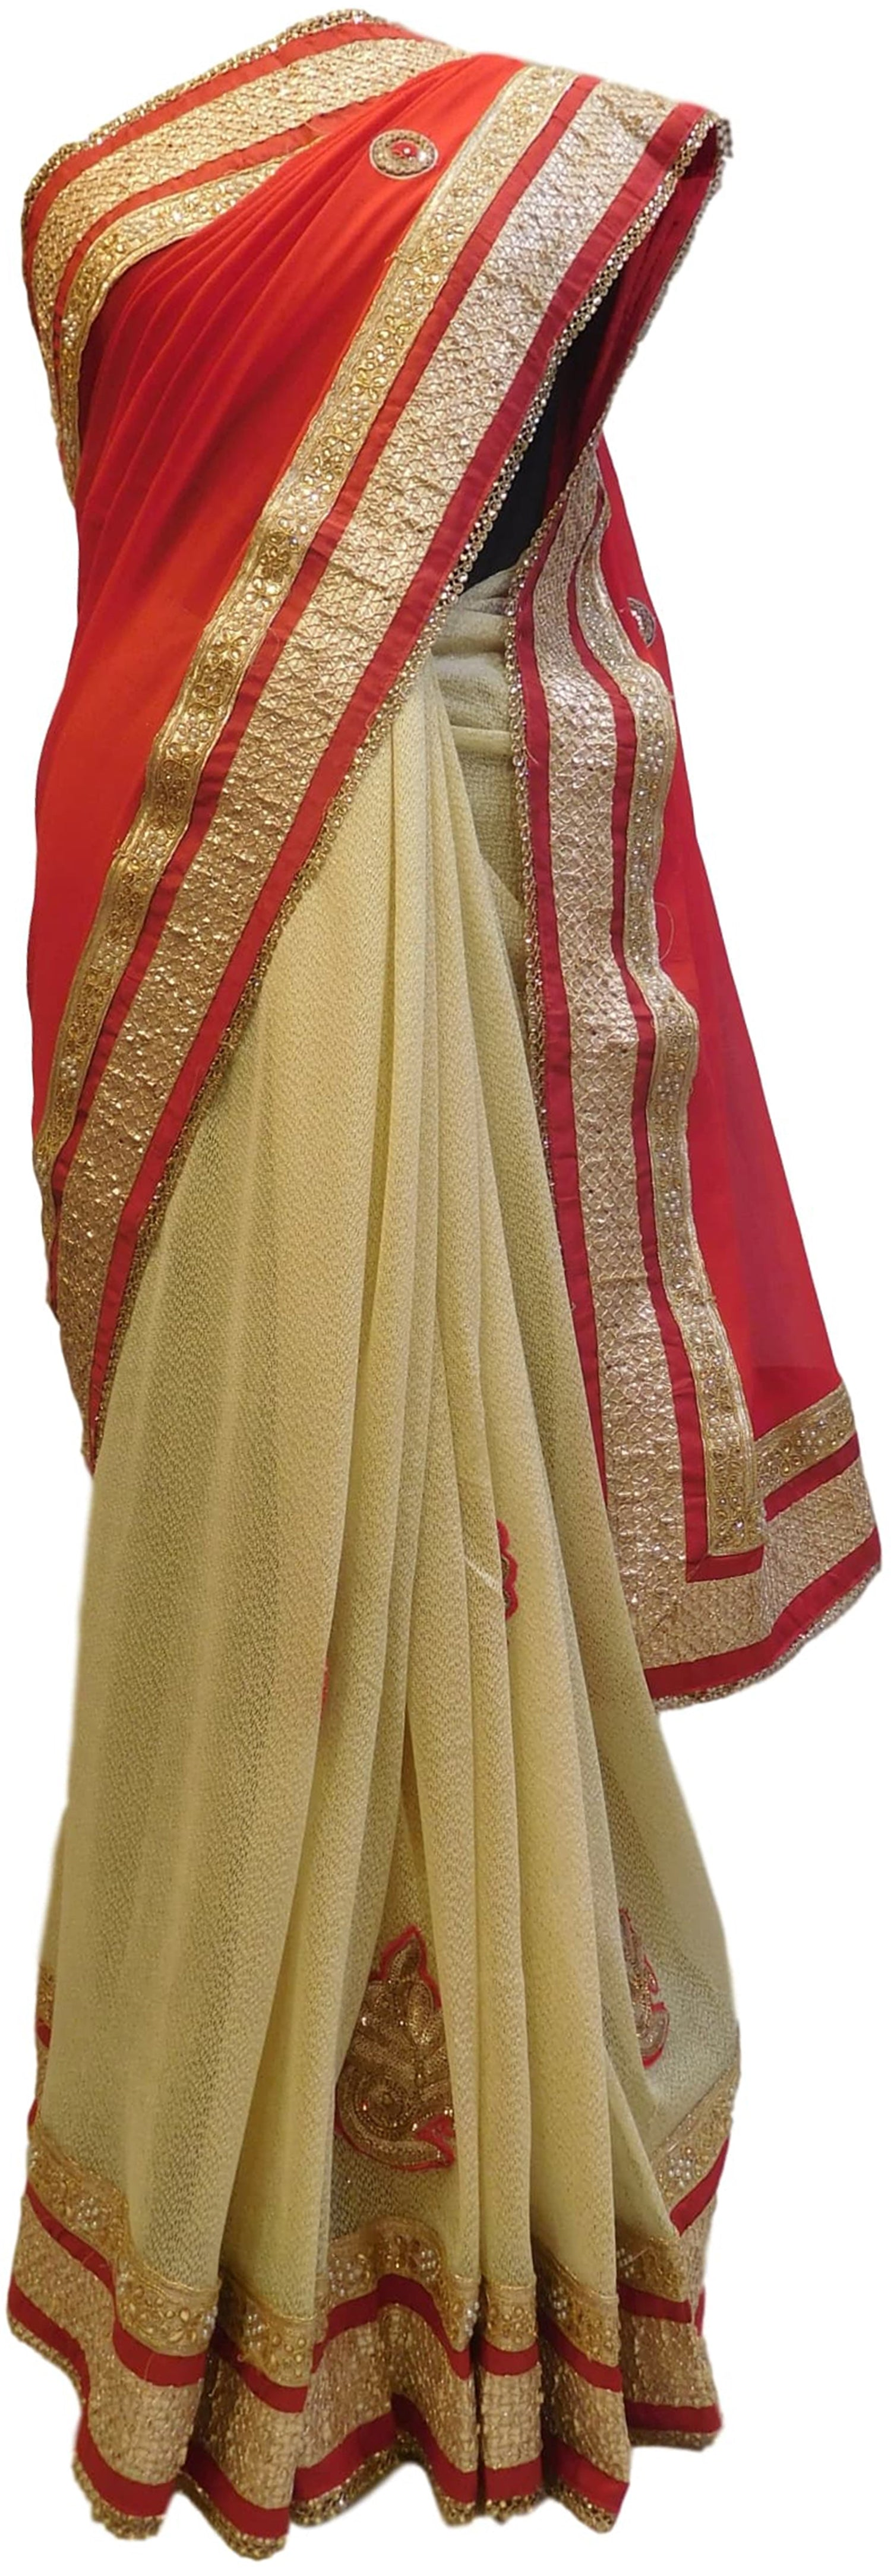 Red & Cream Designer Georgette (Viscos) Hand Embroidery Zari Pearl Stone Work Saree Sari